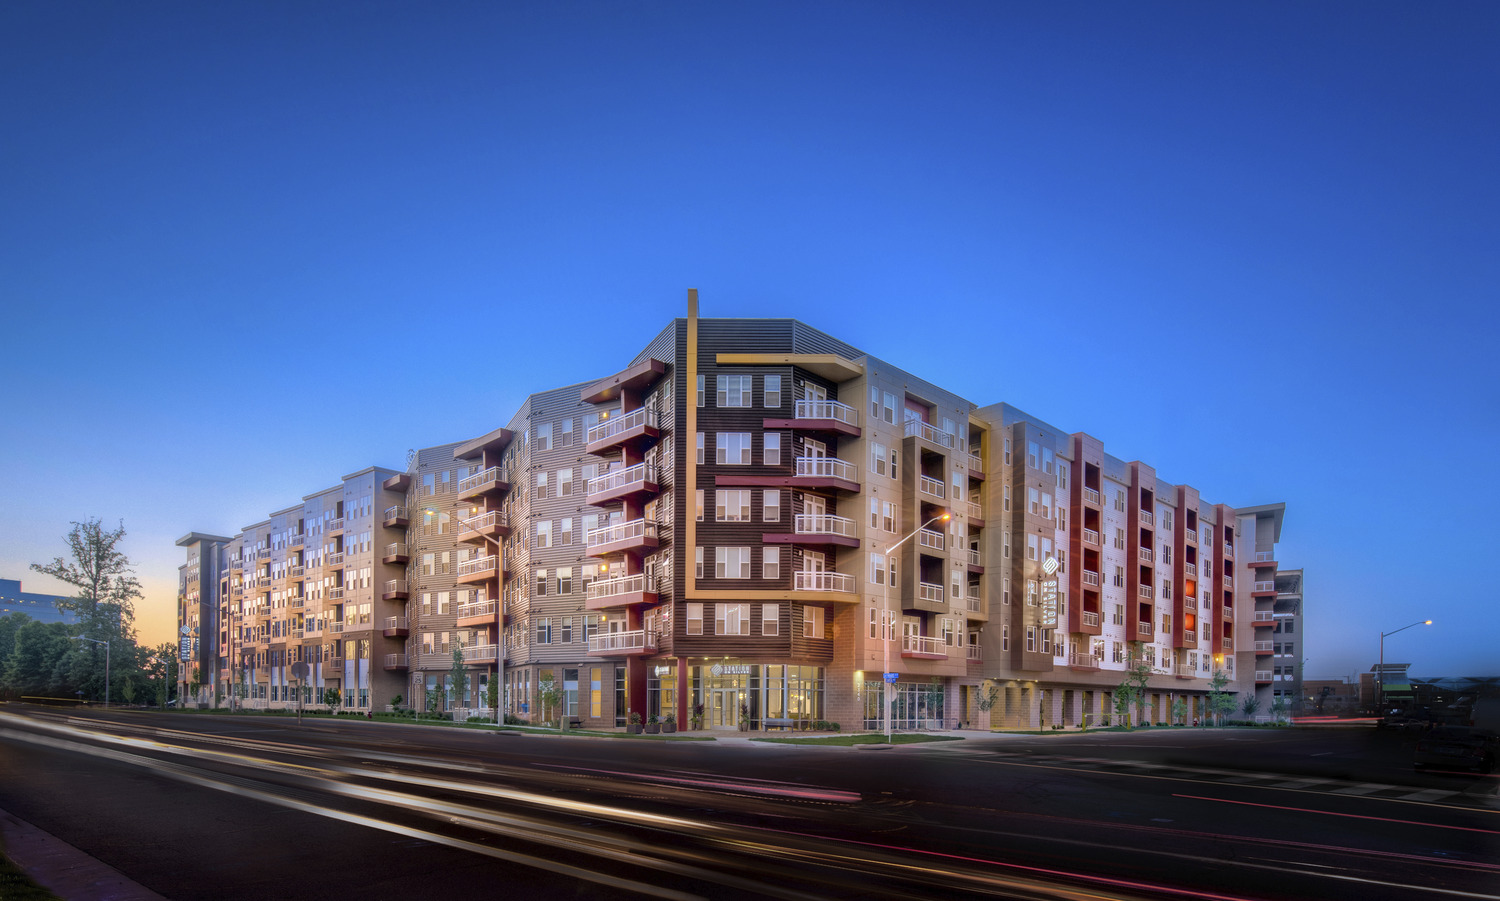 CBG builds Station on Silver, a 400-Unit Transit-Oriented Apartment Community with Parking and Amenities in Herndon, VA - Image #1